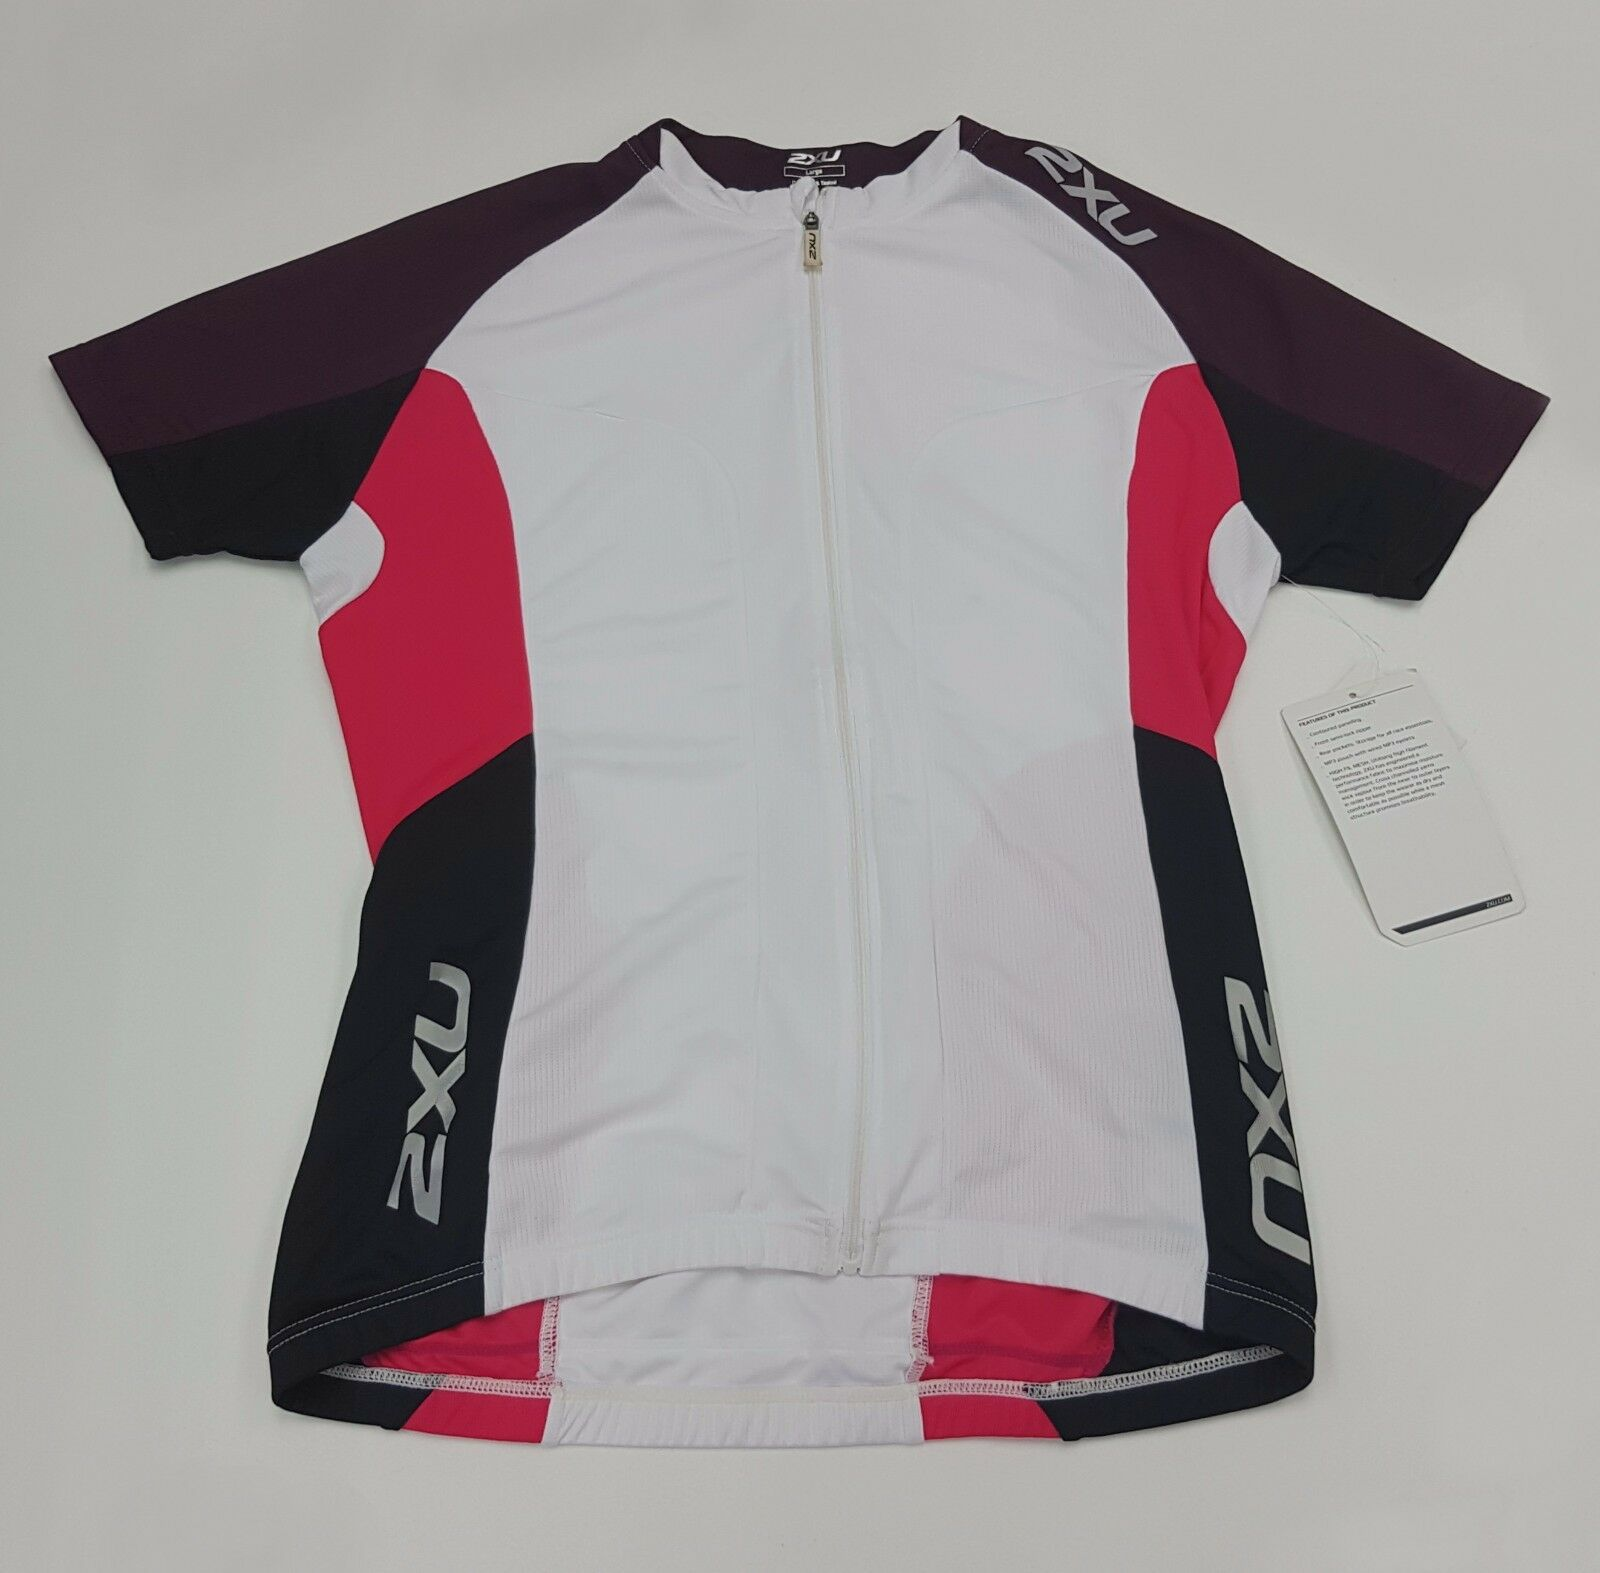 2XU Road Comp Women's Cycling Jersey WC2020a White Blister Pink Size L